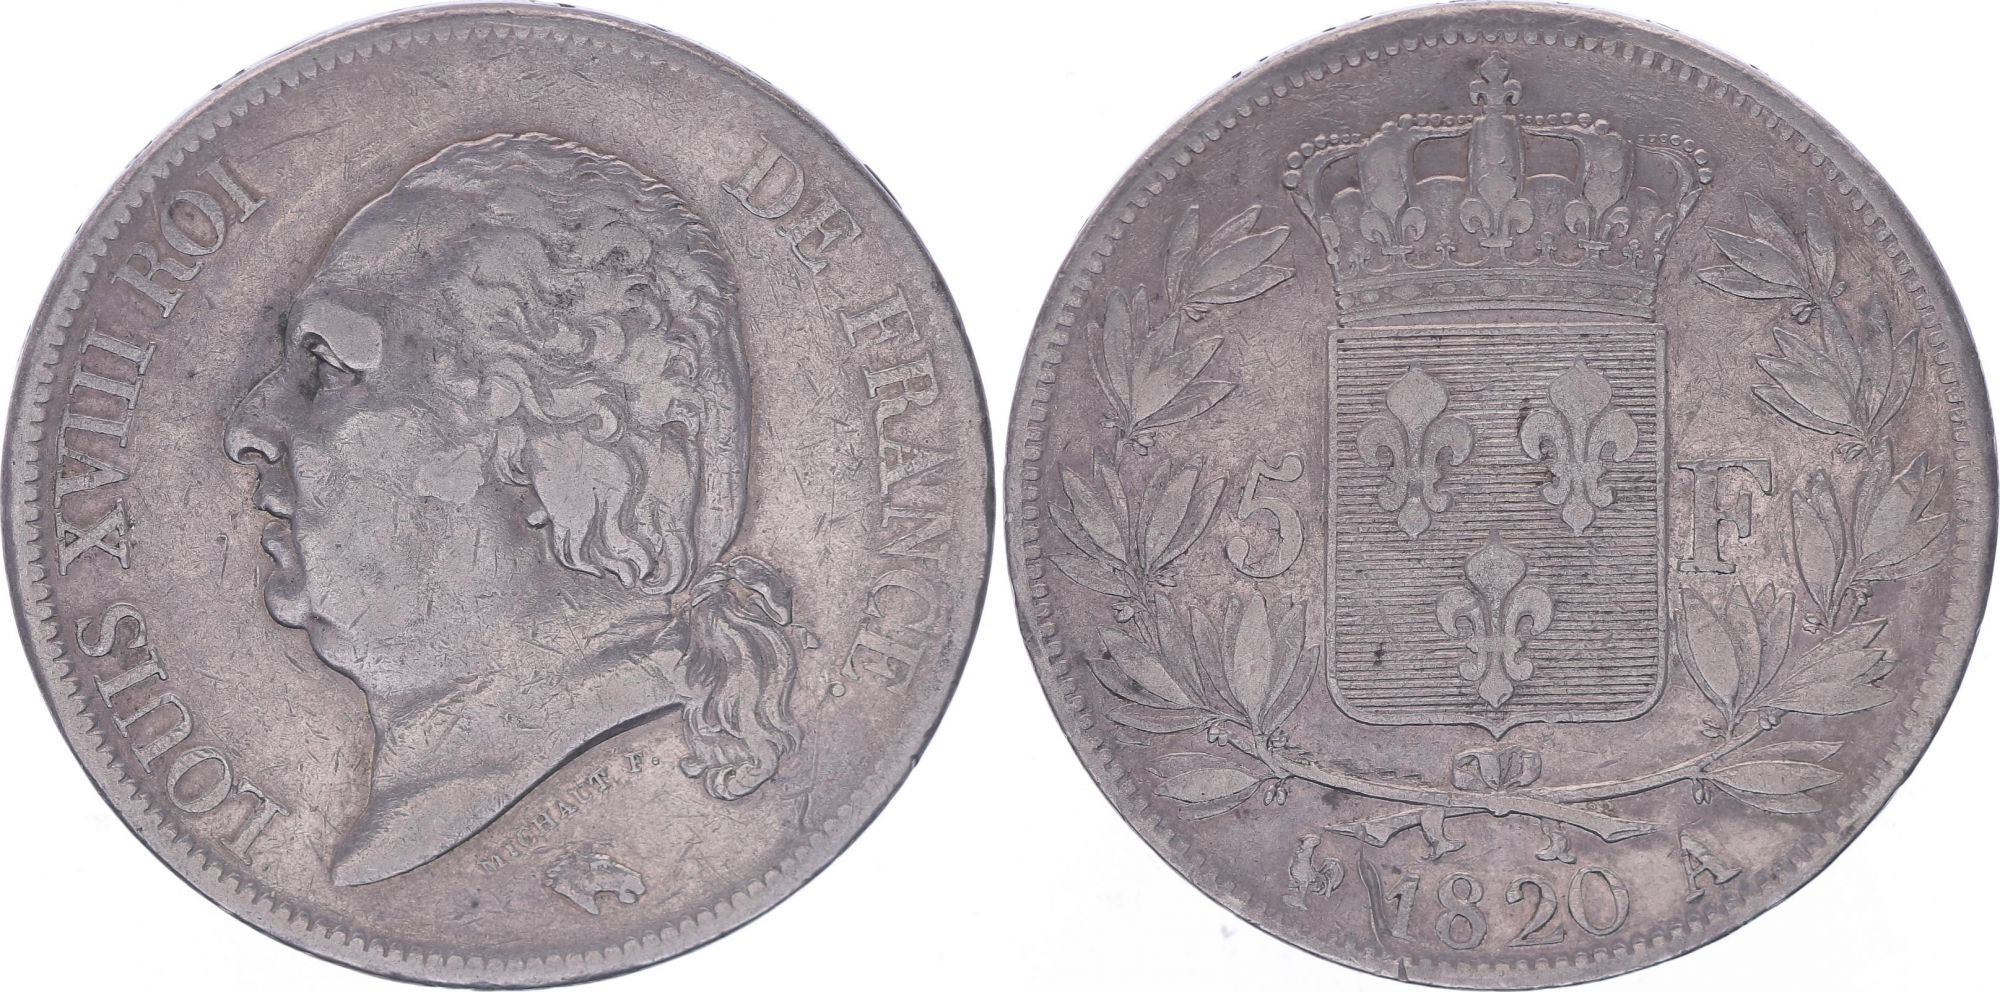 France 5 Francs Louis XVIII - Buste nu - 1820 A Paris - TB+